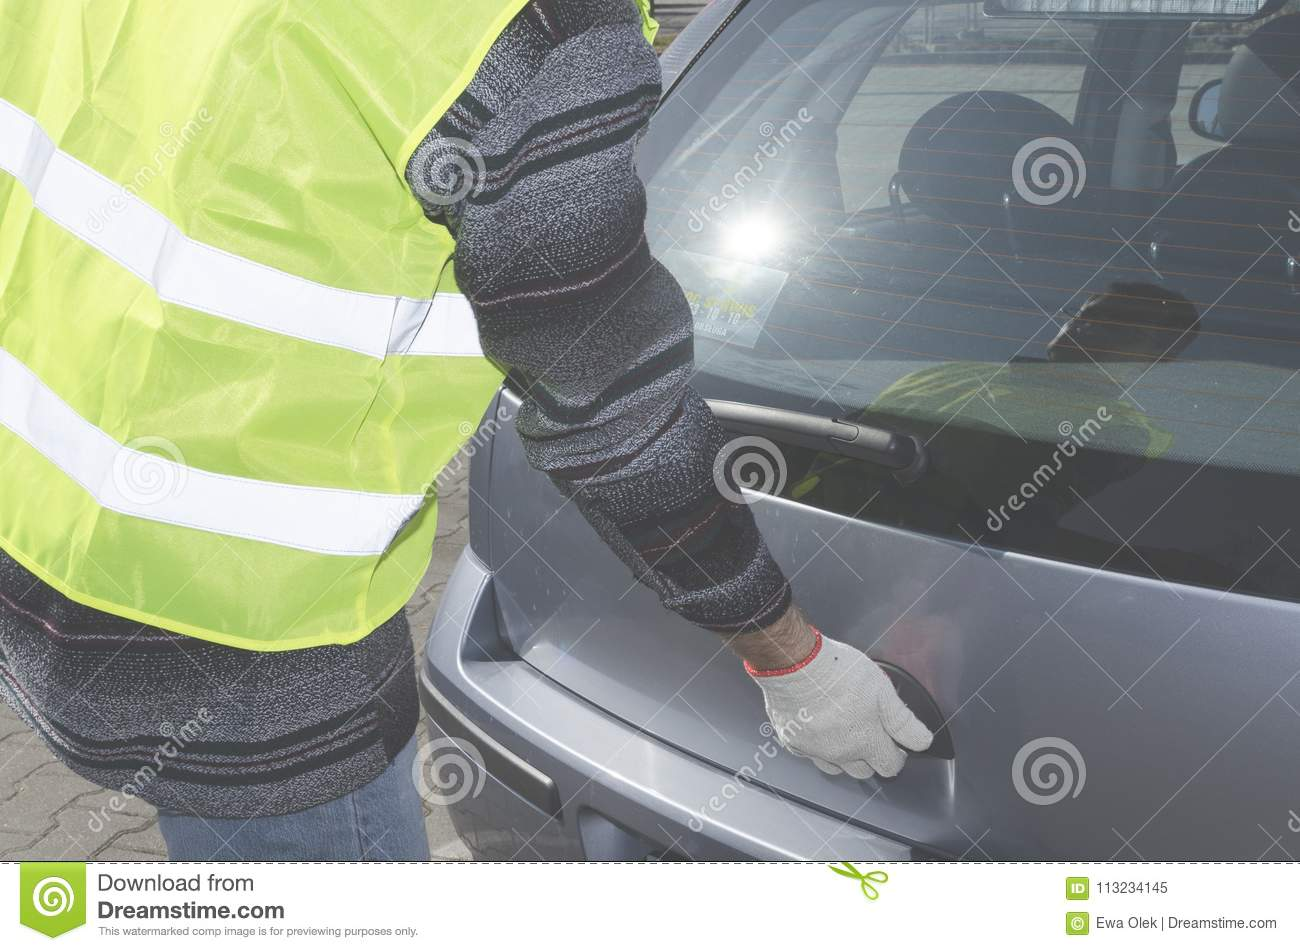 Man in a safety vest is opening boot in his car